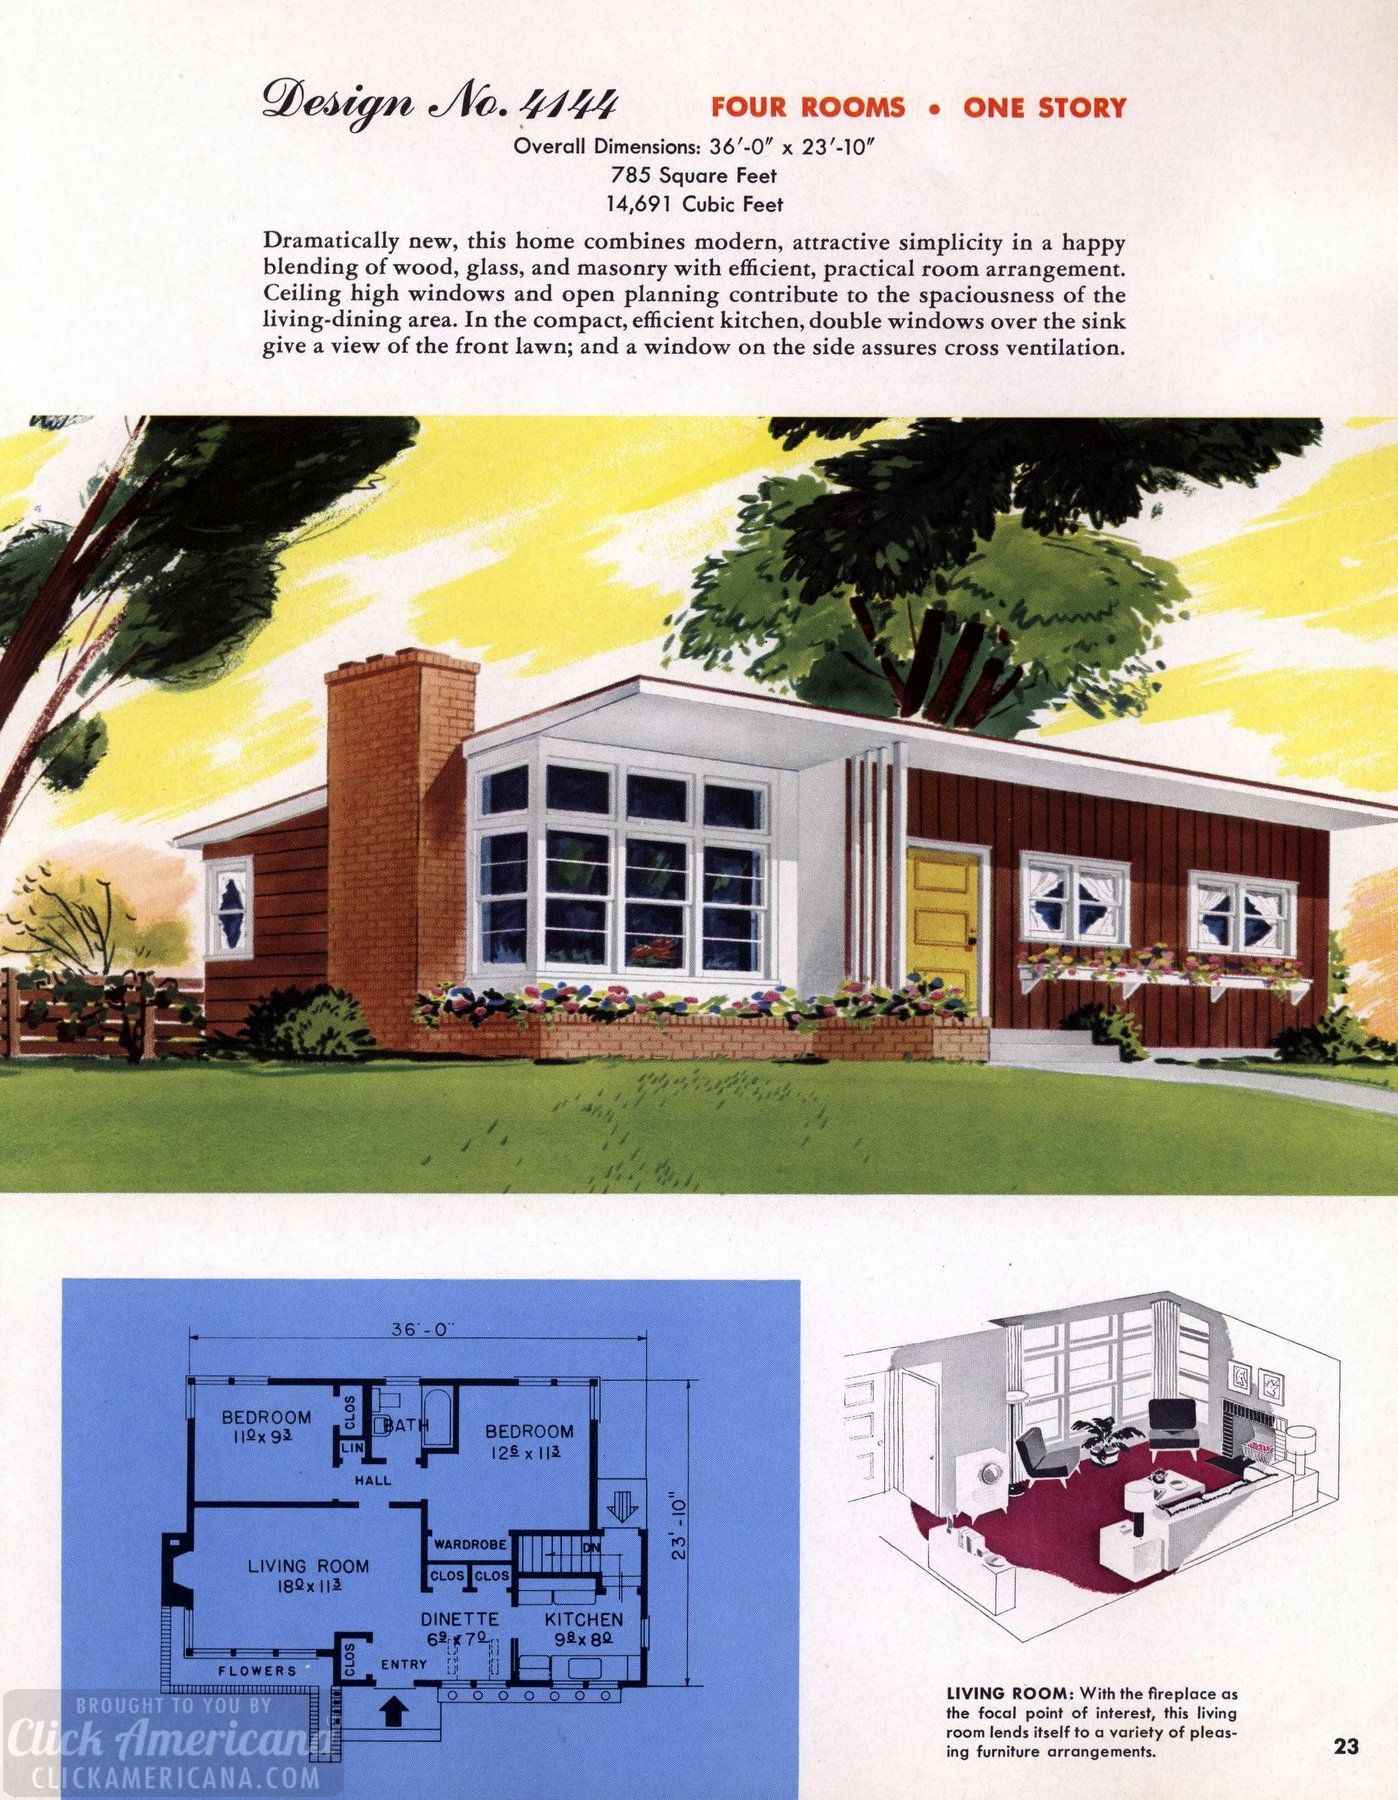 130 Vintage 50s House Plans Used To Build Millions Of Mid Century Homes We Still Live In Today Mid Century Modern House Plans Vintage House Plans Modern House Plans